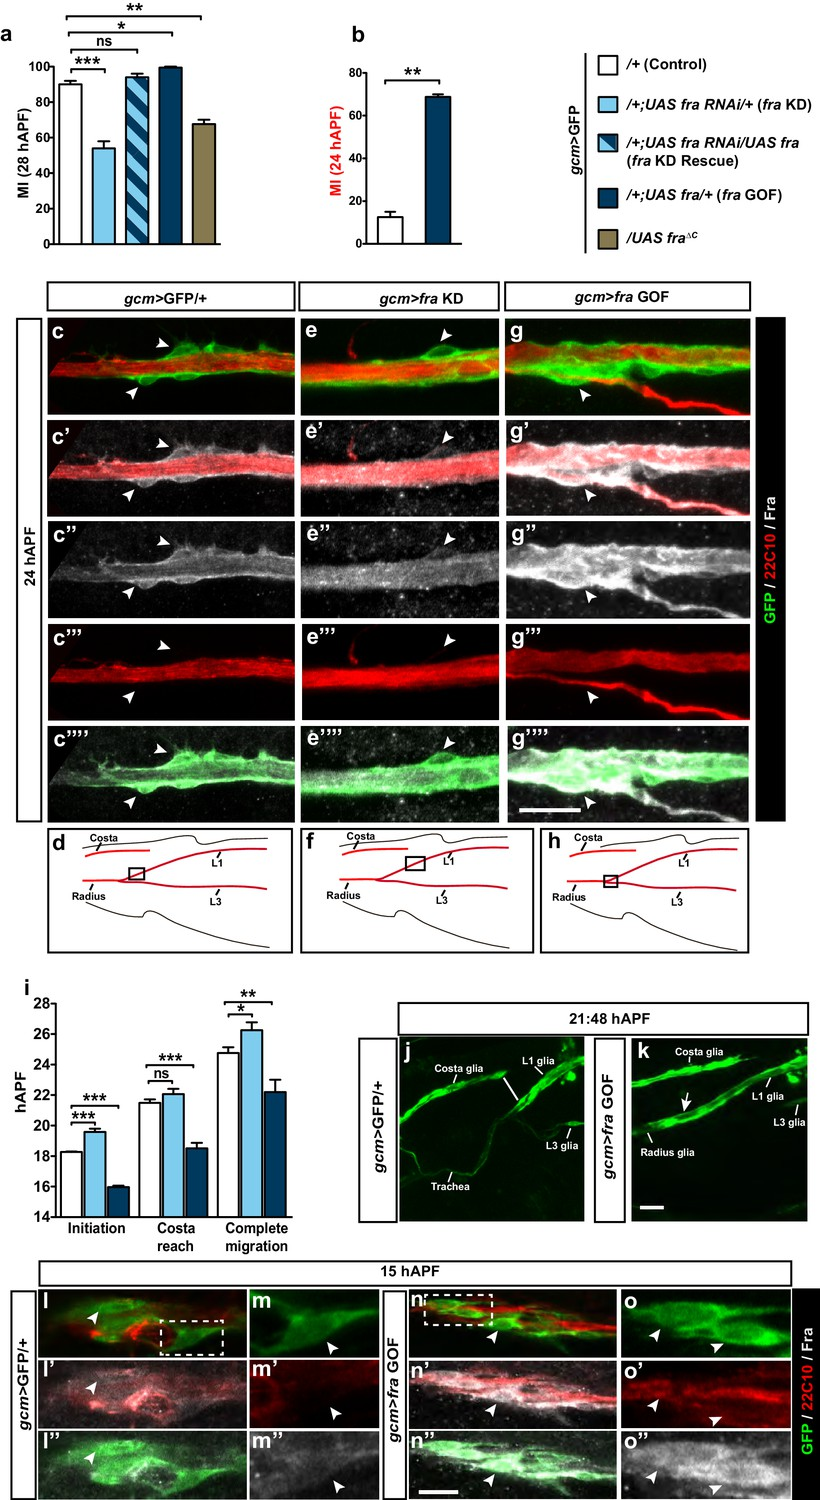 The Glide/Gcm fate determinant controls initiation of